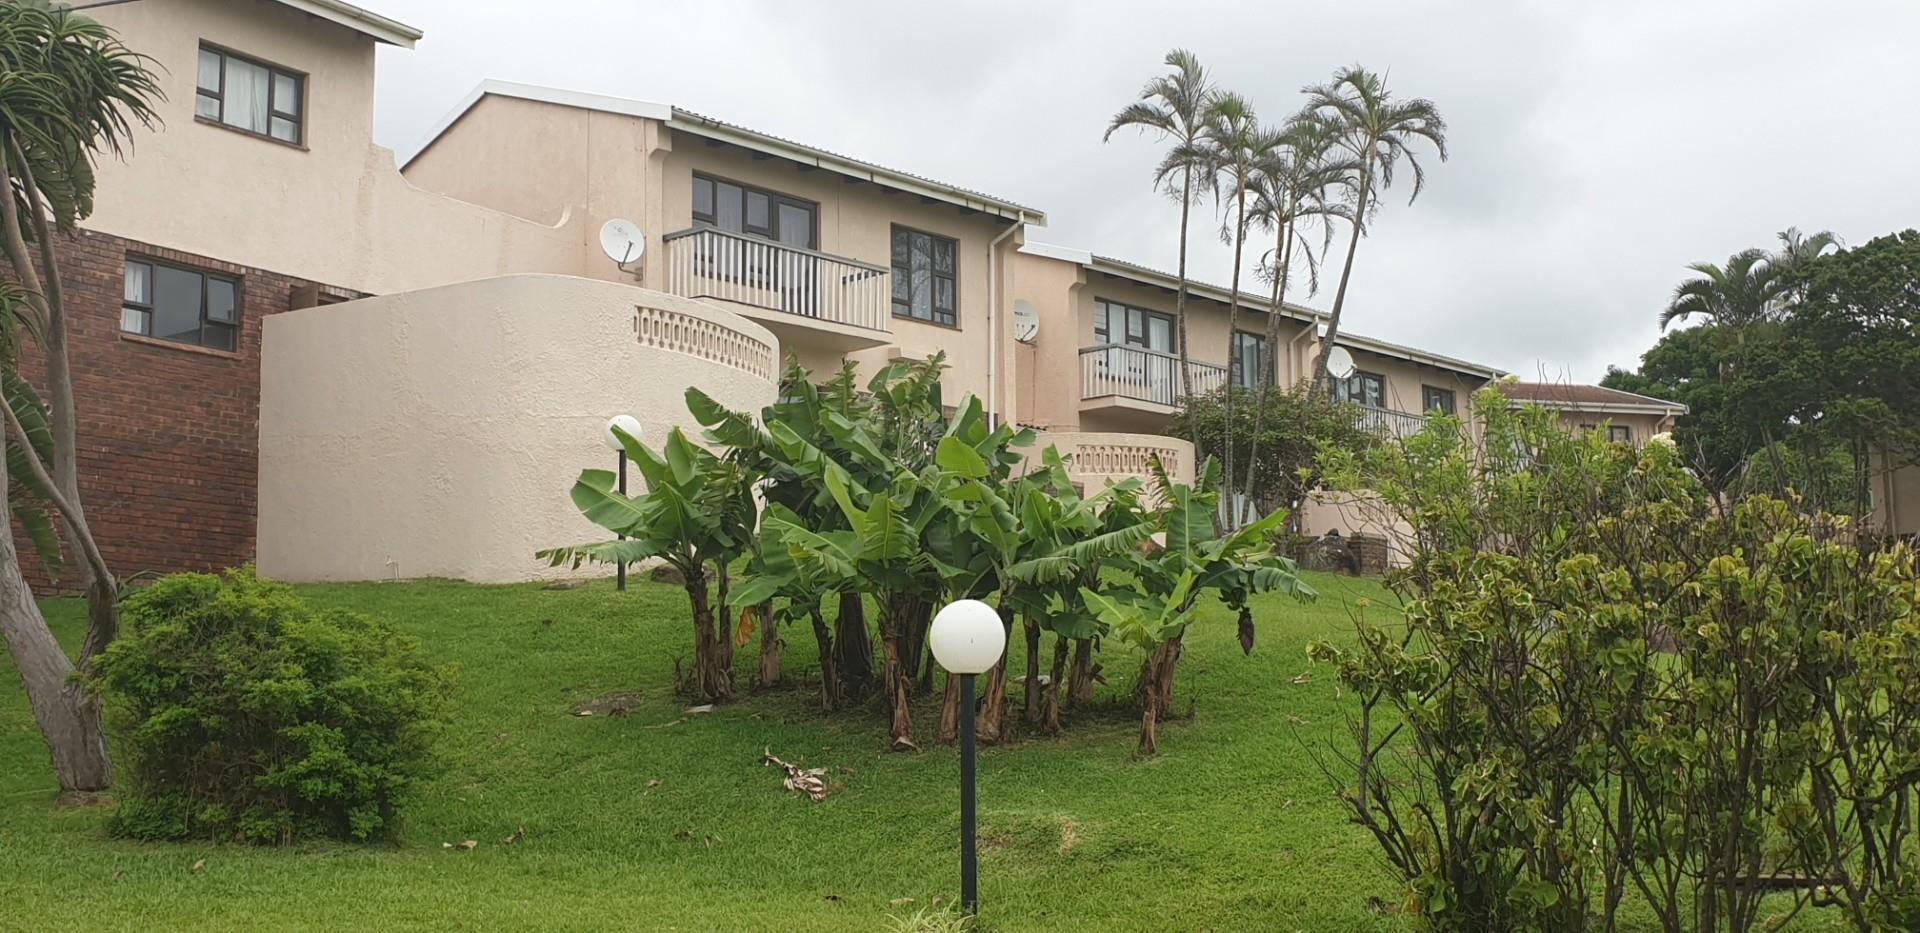 3 Bedroom House For Sale in Port Edward